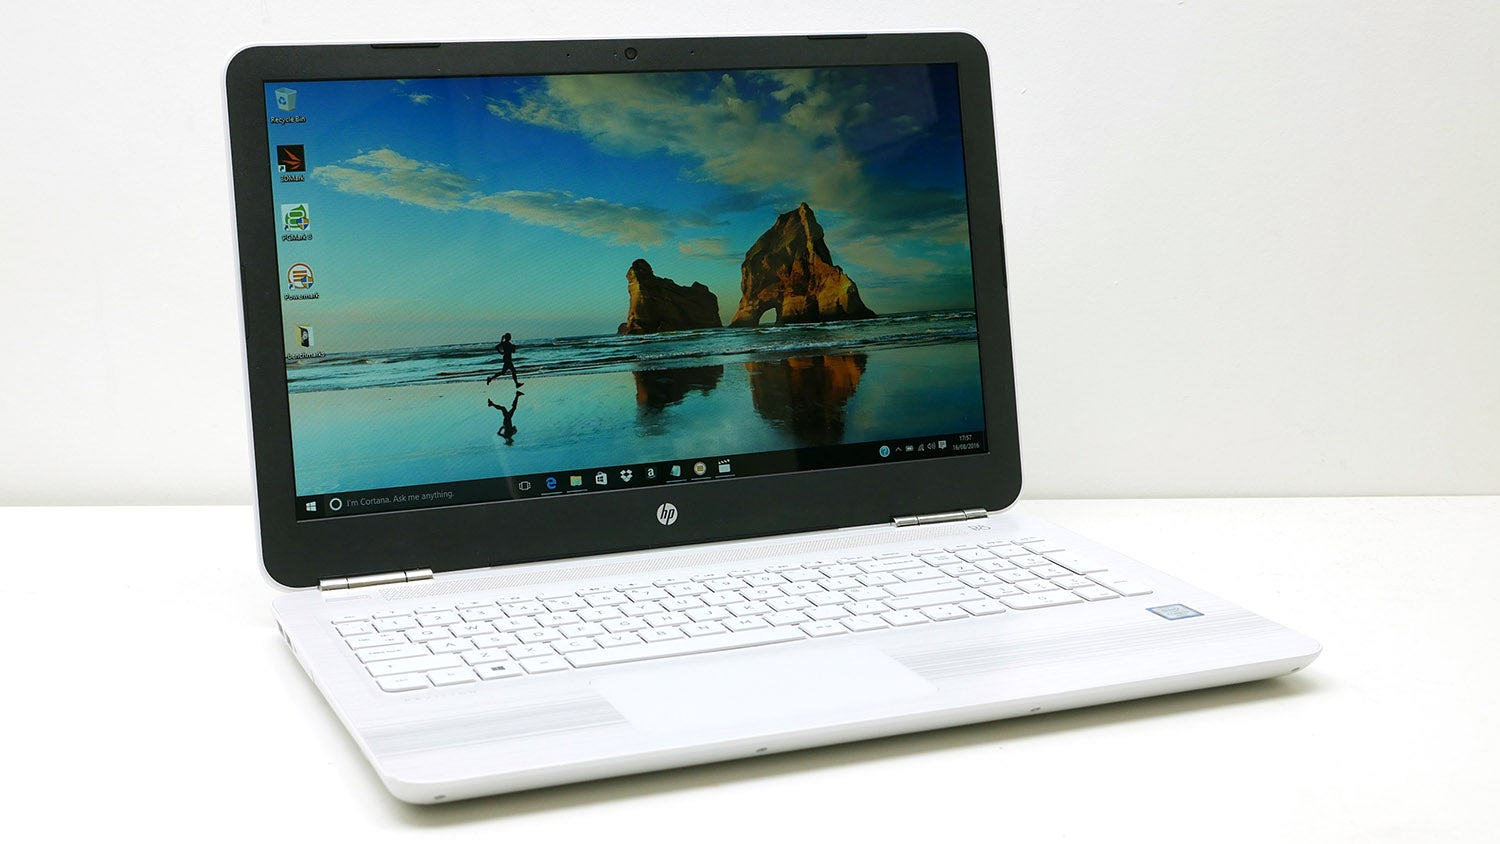 This HP Pavilion x Convertible Laptop is a powerful option for working on the go. It has a degree hinge which allows you to work and type on it like a traditional laptop, flip it over to act as a stand or use the touchscreen like a tablet.